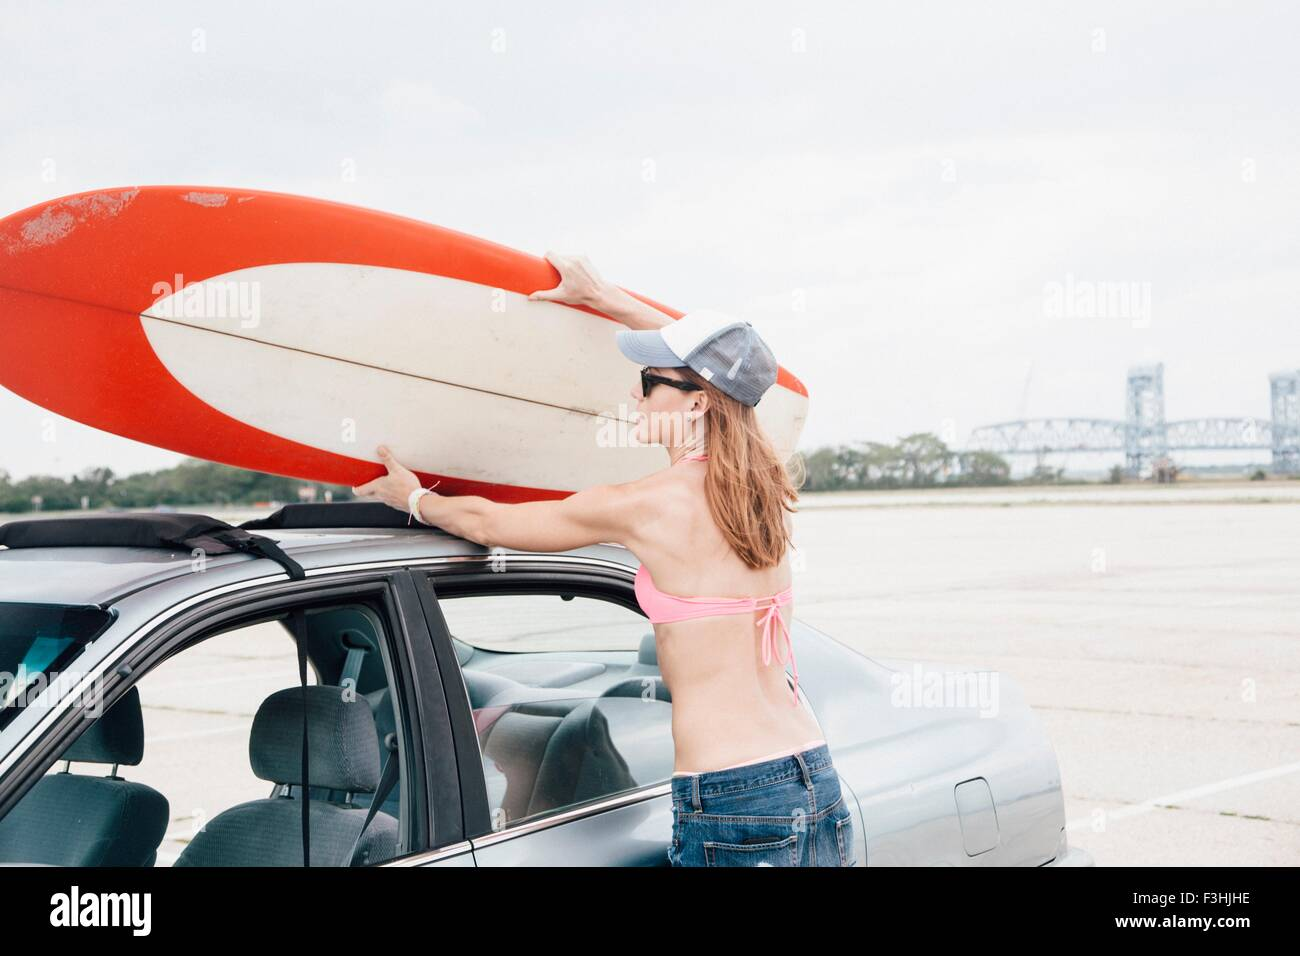 Mid adult woman at beach, removing surfboard from car roof Stock Photo